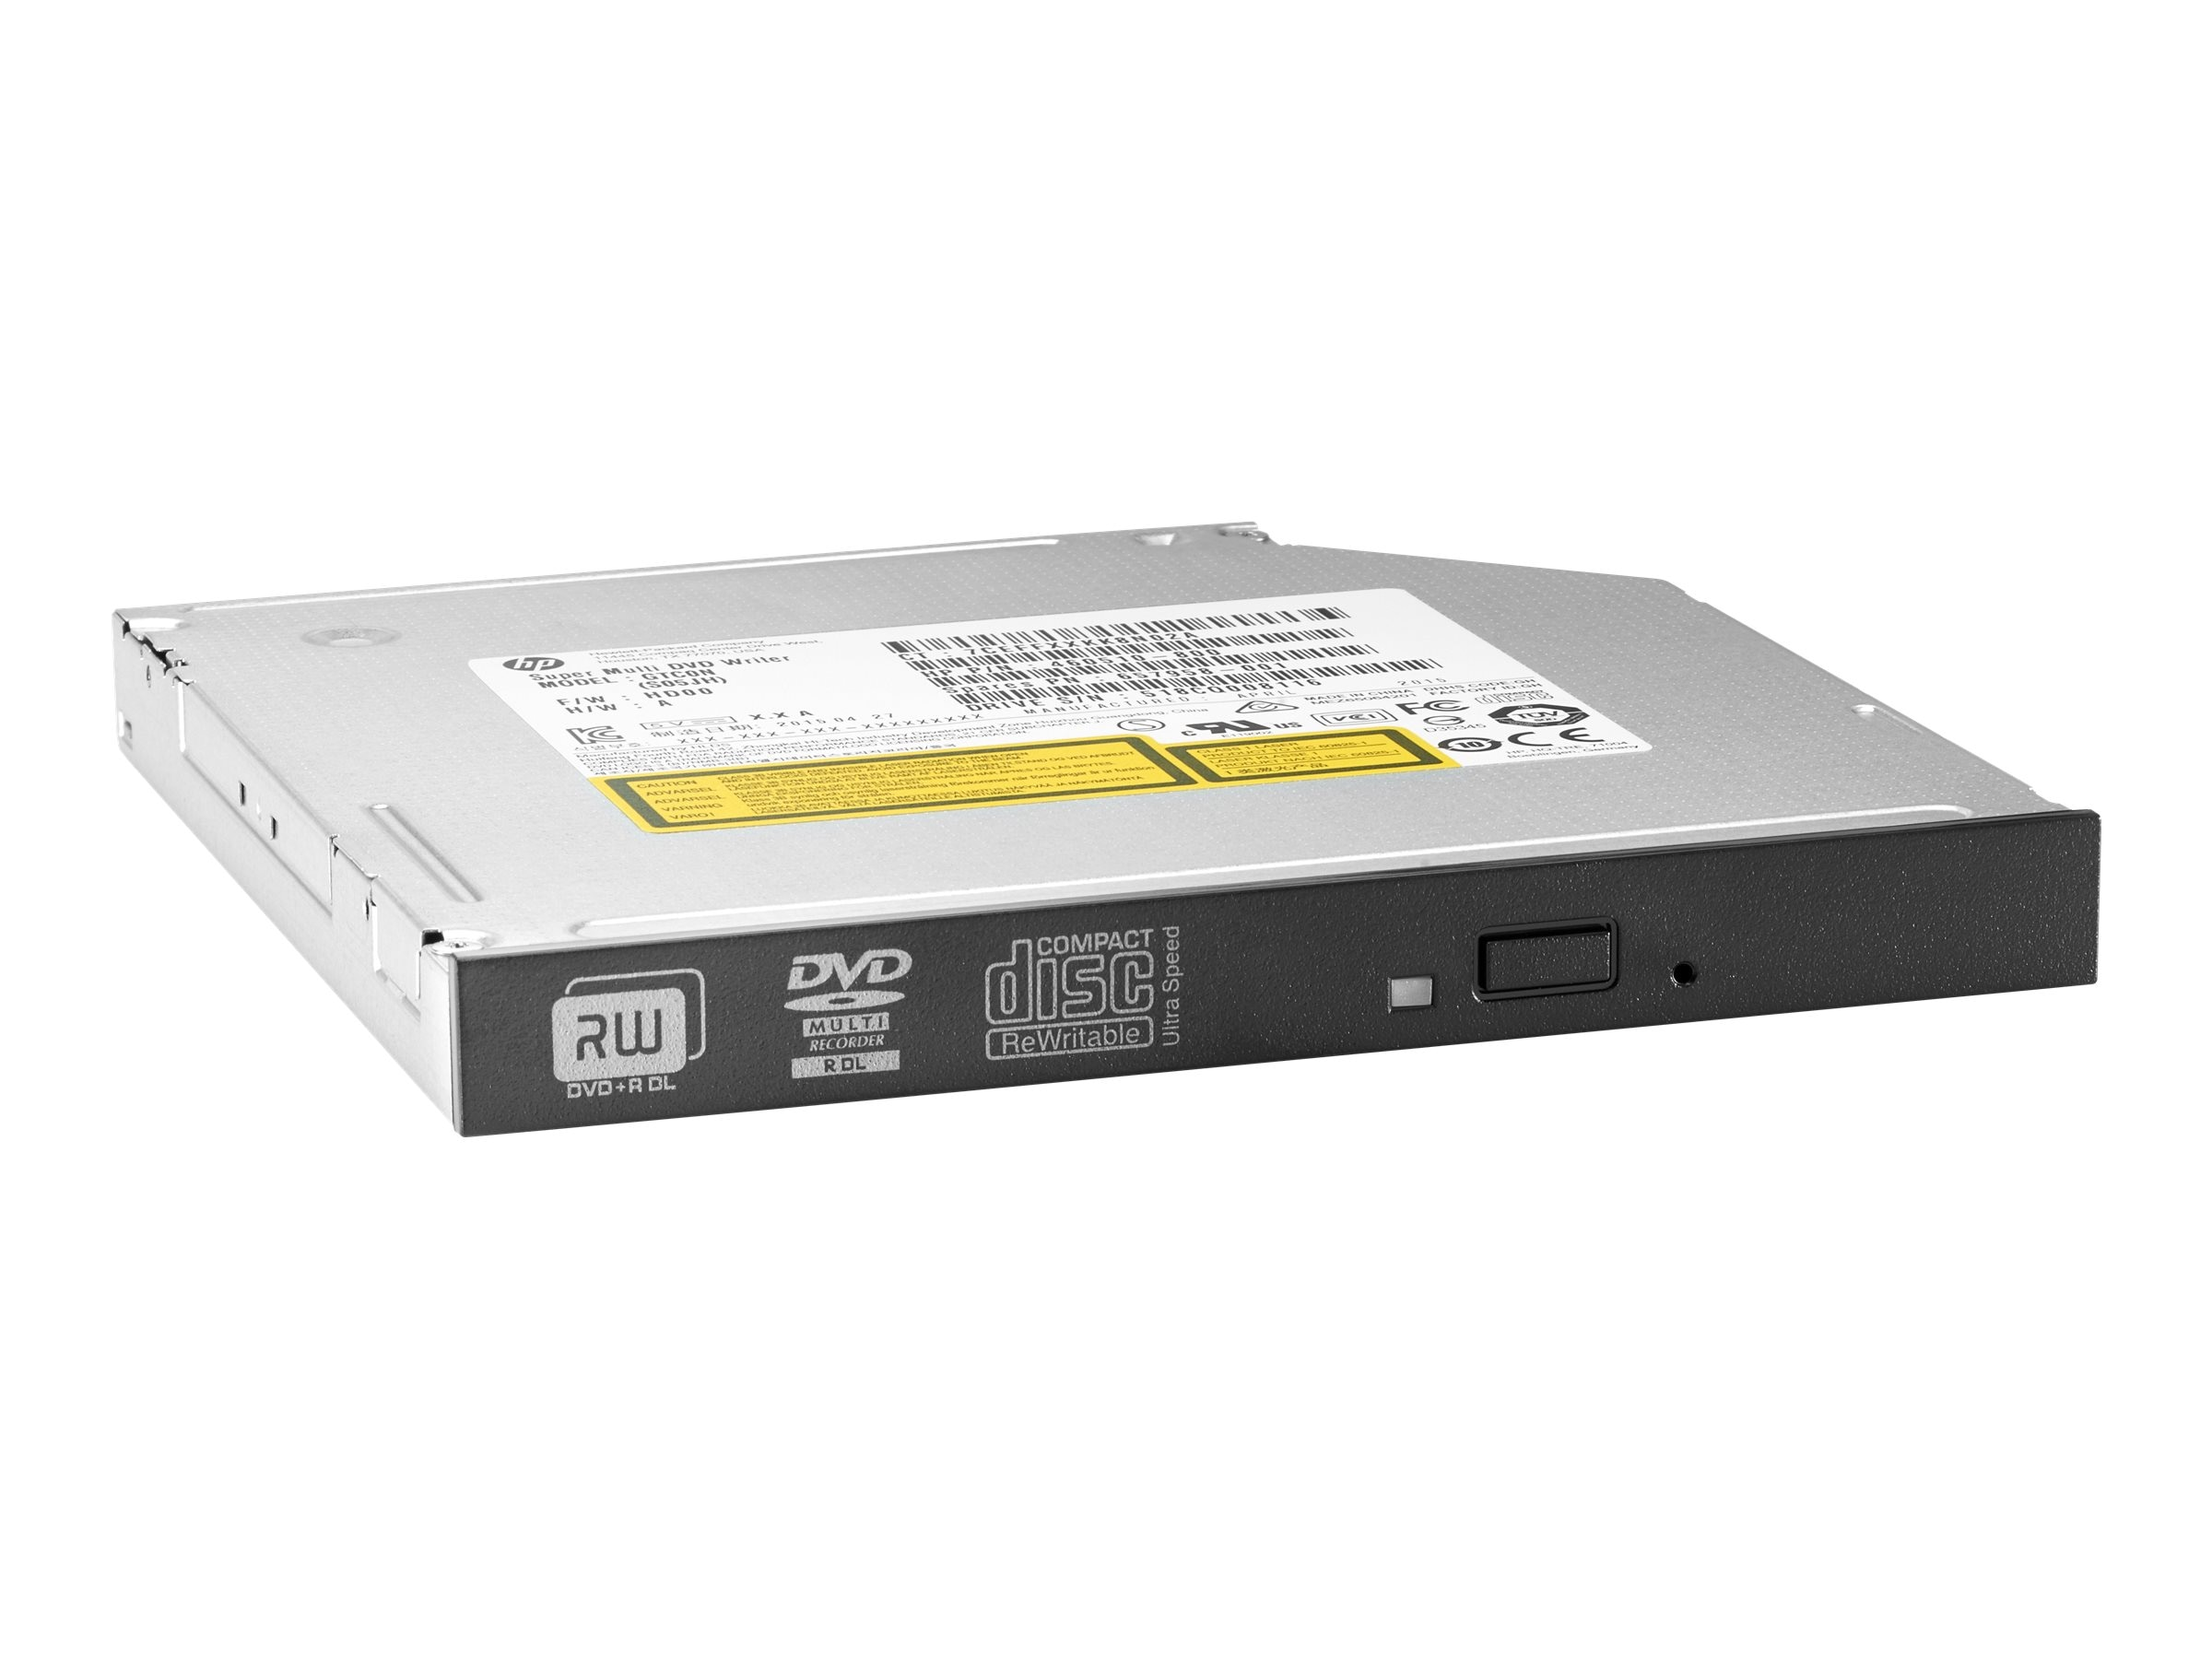 HP 9.5mm Desktop G2 Slim DVD-Writer Drive